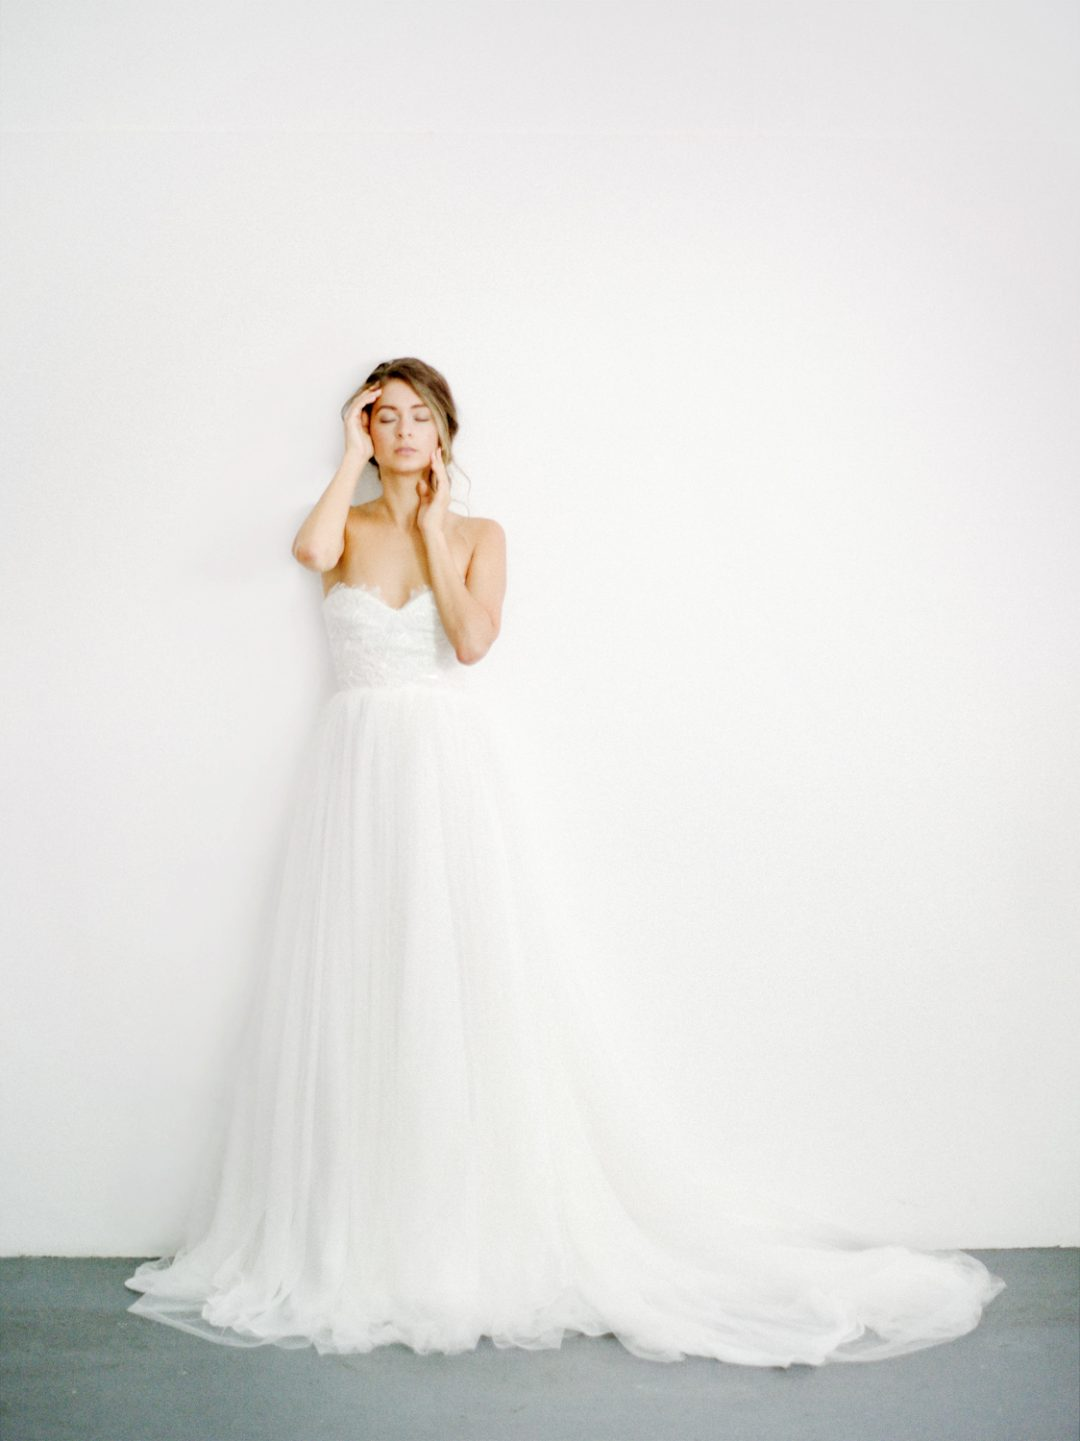 "SIBO Designs 2018 Collection - Couture Strapless Lace Bridal Gown ""Hope"" www.sibodesigns.com"